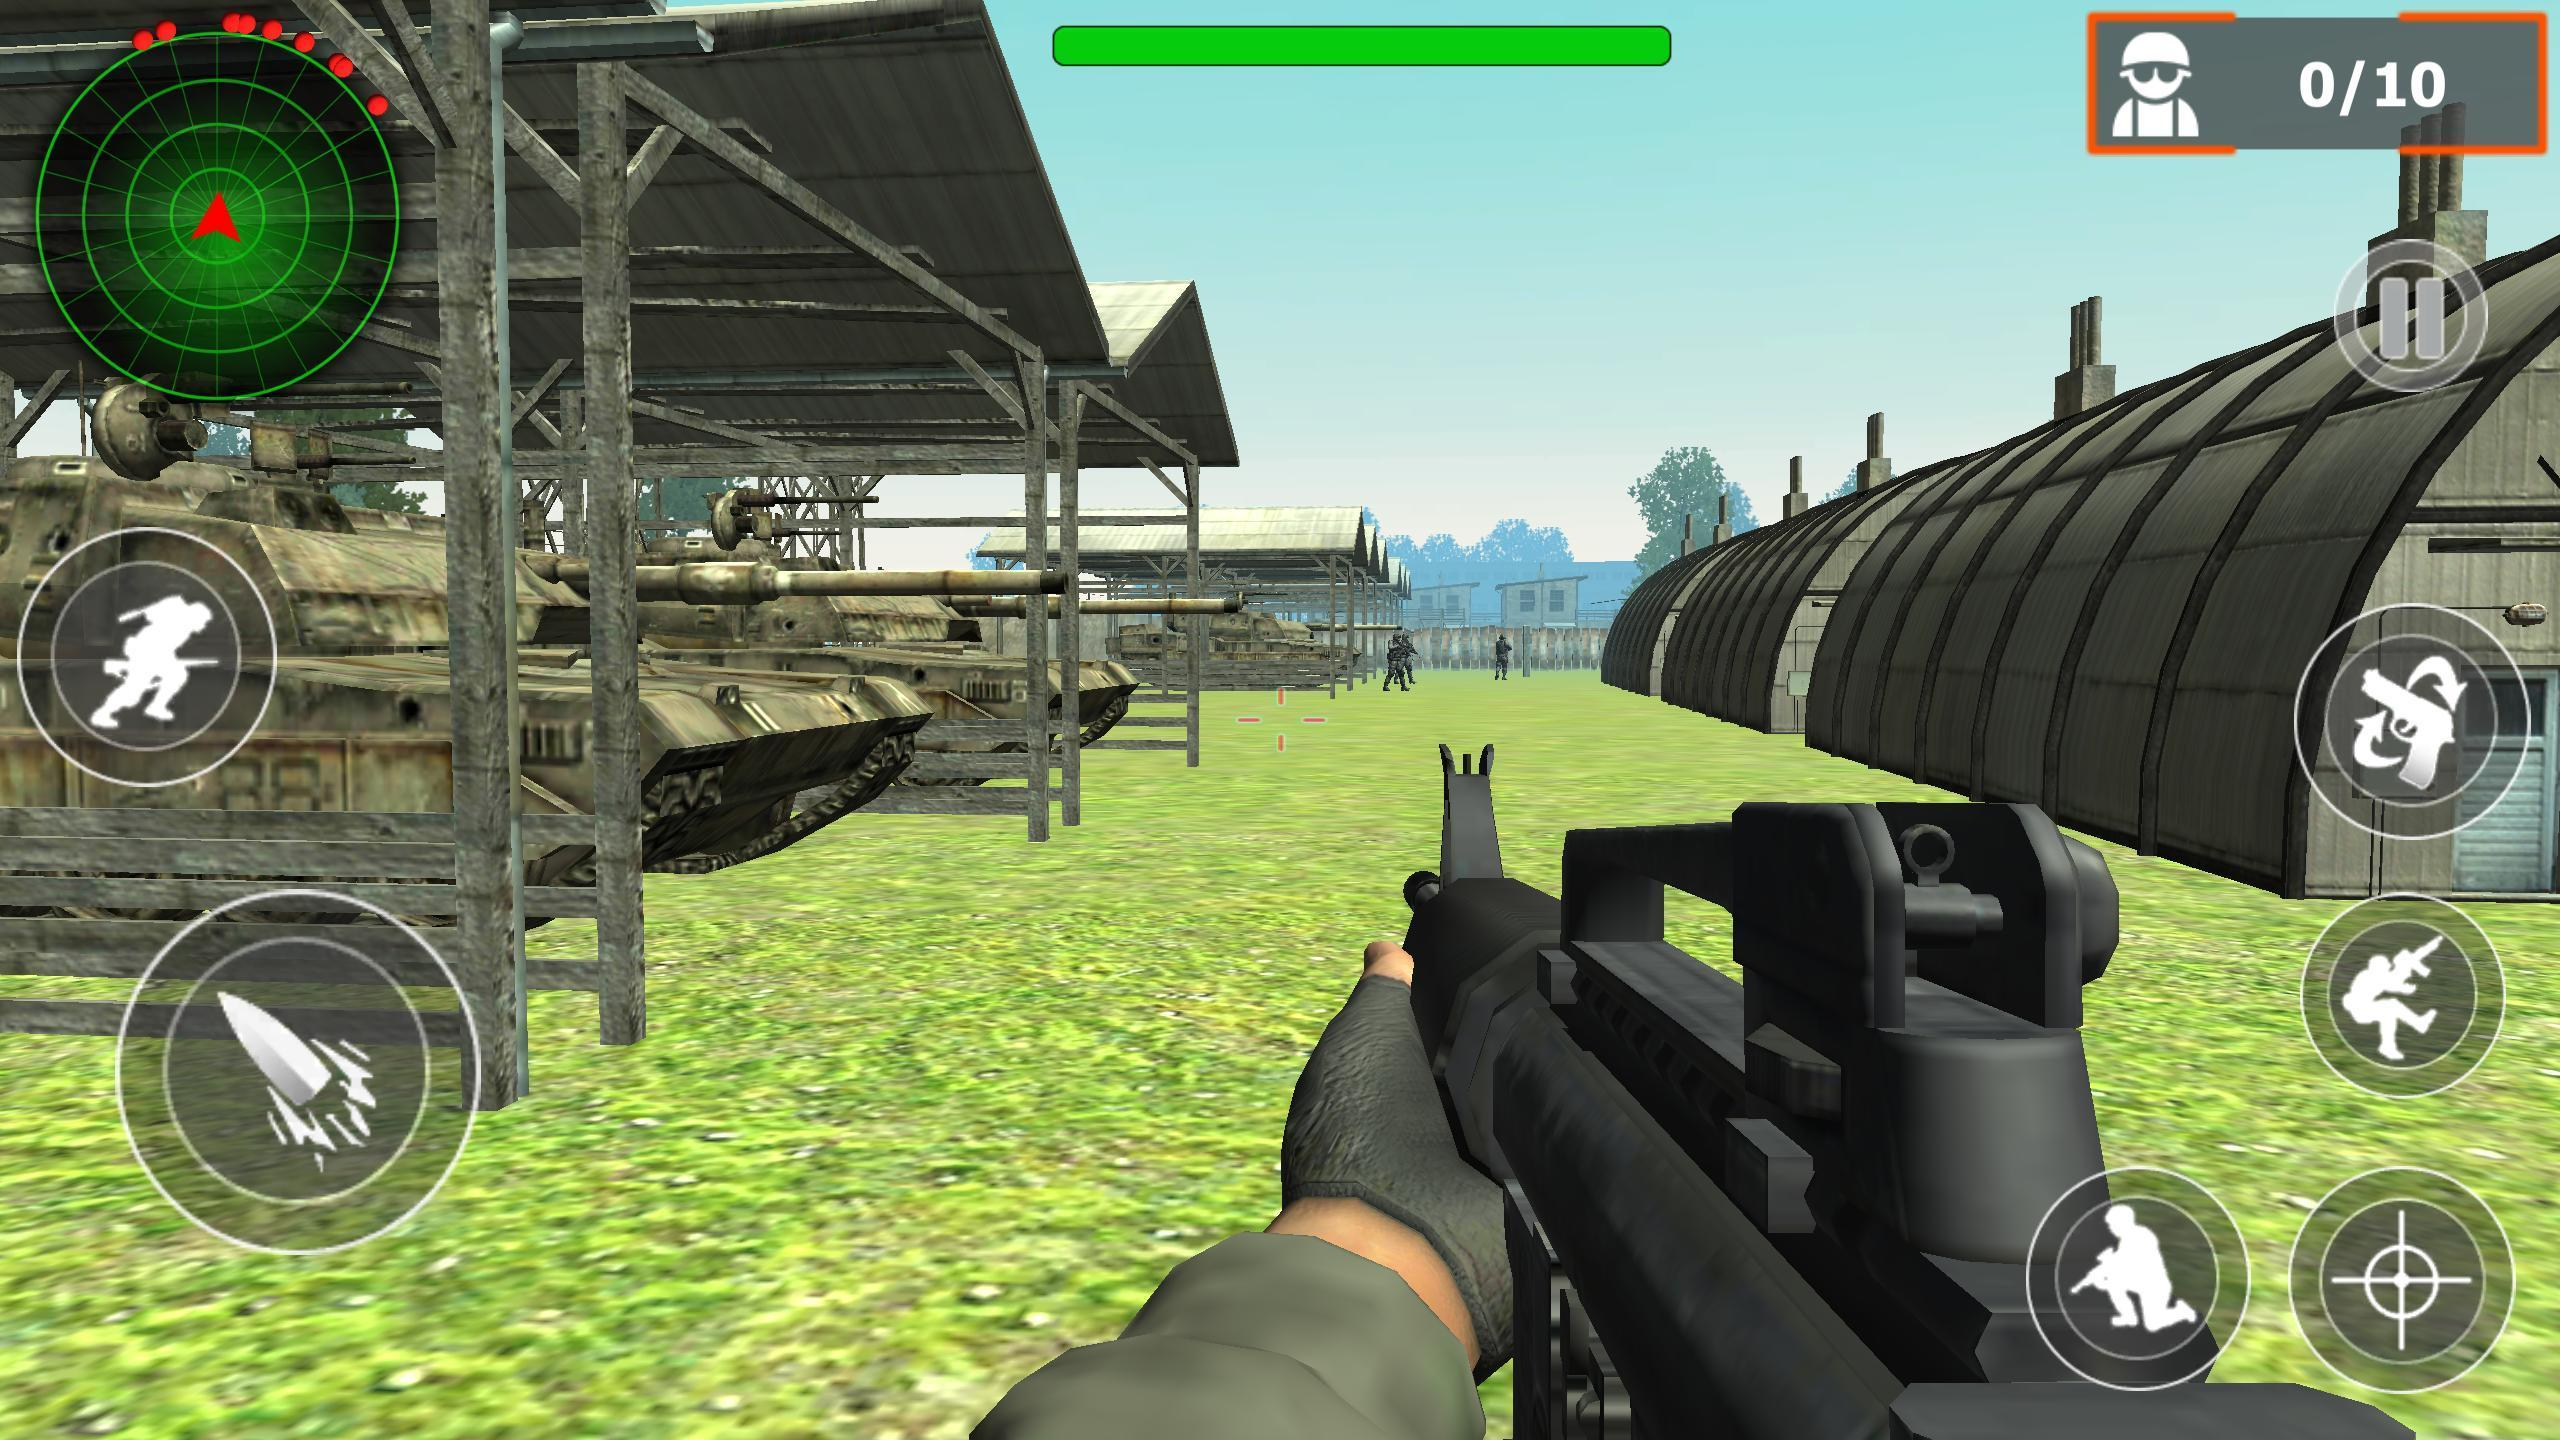 Battlefield Heroes For Android Apk Download